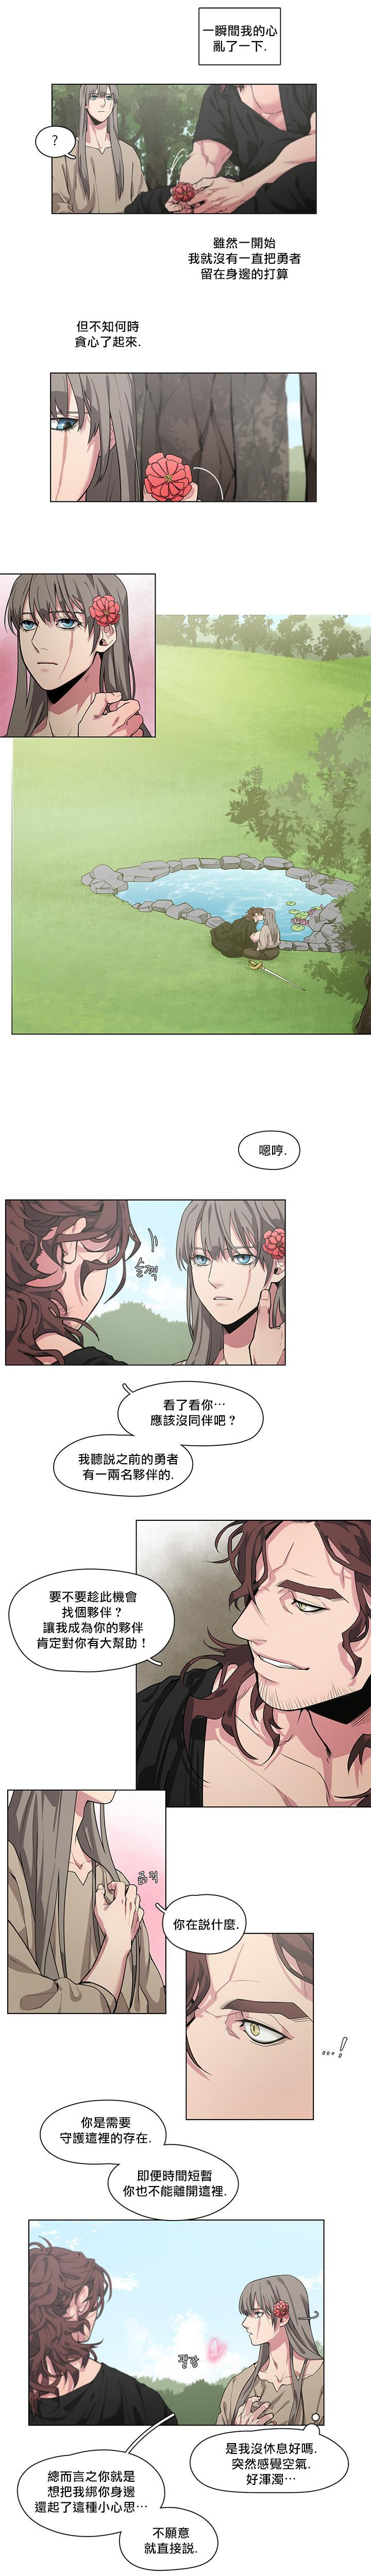 The Warrior and the Deity   勇者与山神 Ch. 2-6+加笔1+加笔2 26